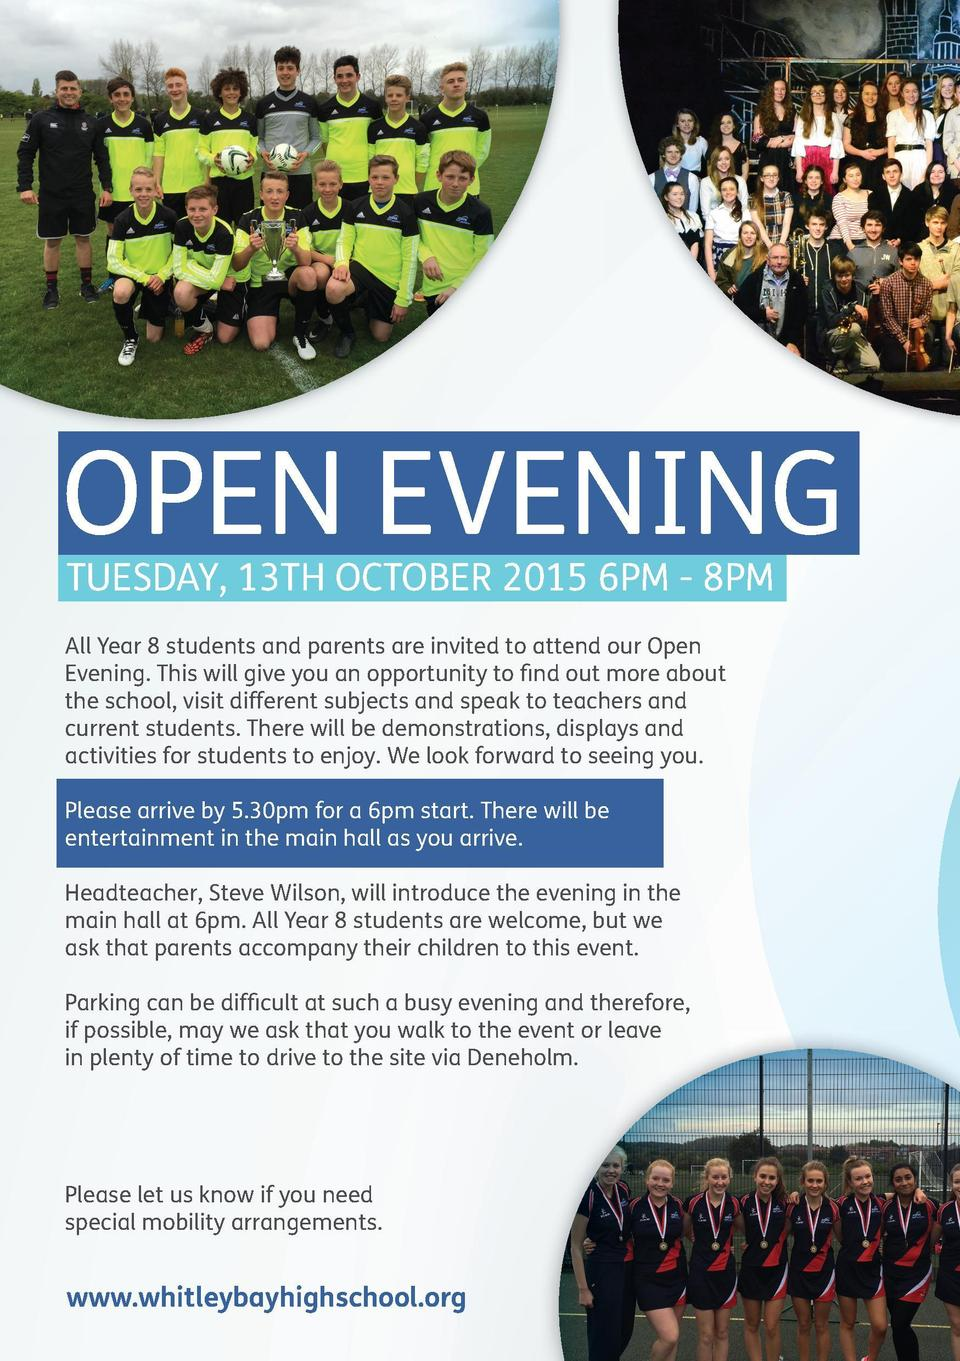 OPEN EVENING TUESDAY, 13TH OCTOBER 2015 6PM - 8PM  All Year 8 students and parents are invited to attend our Open Evening....